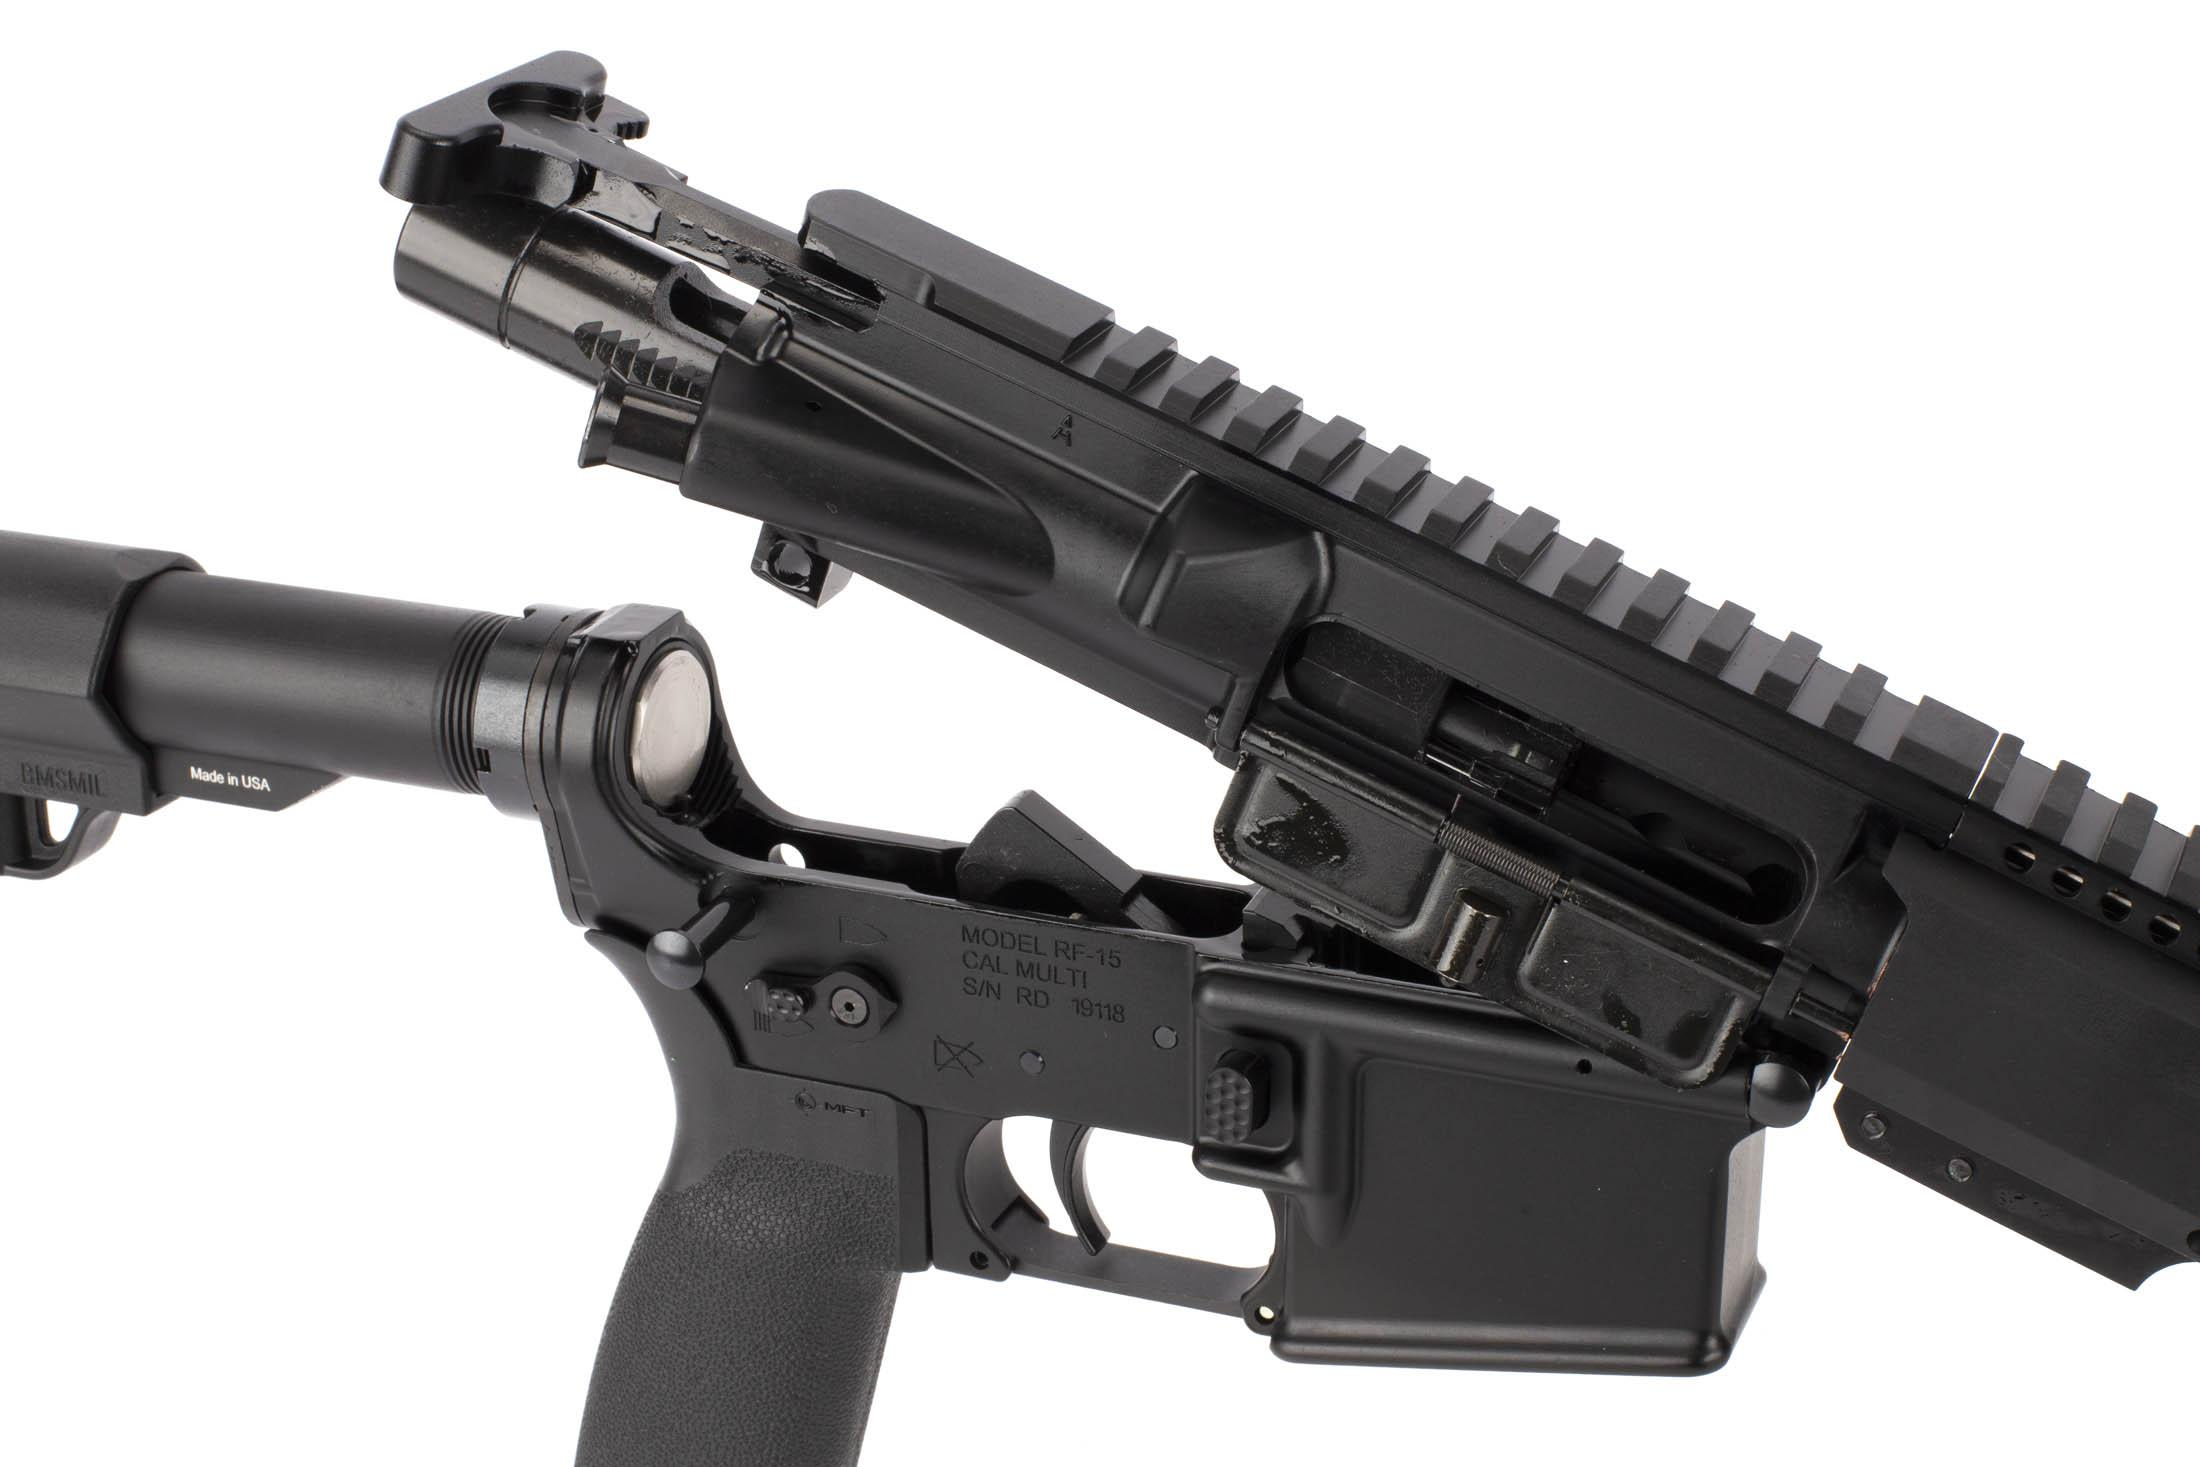 Radical Firearms 16in 5.56 NATO complete AR-15 with carbine buffer and M16 bolt carrier group